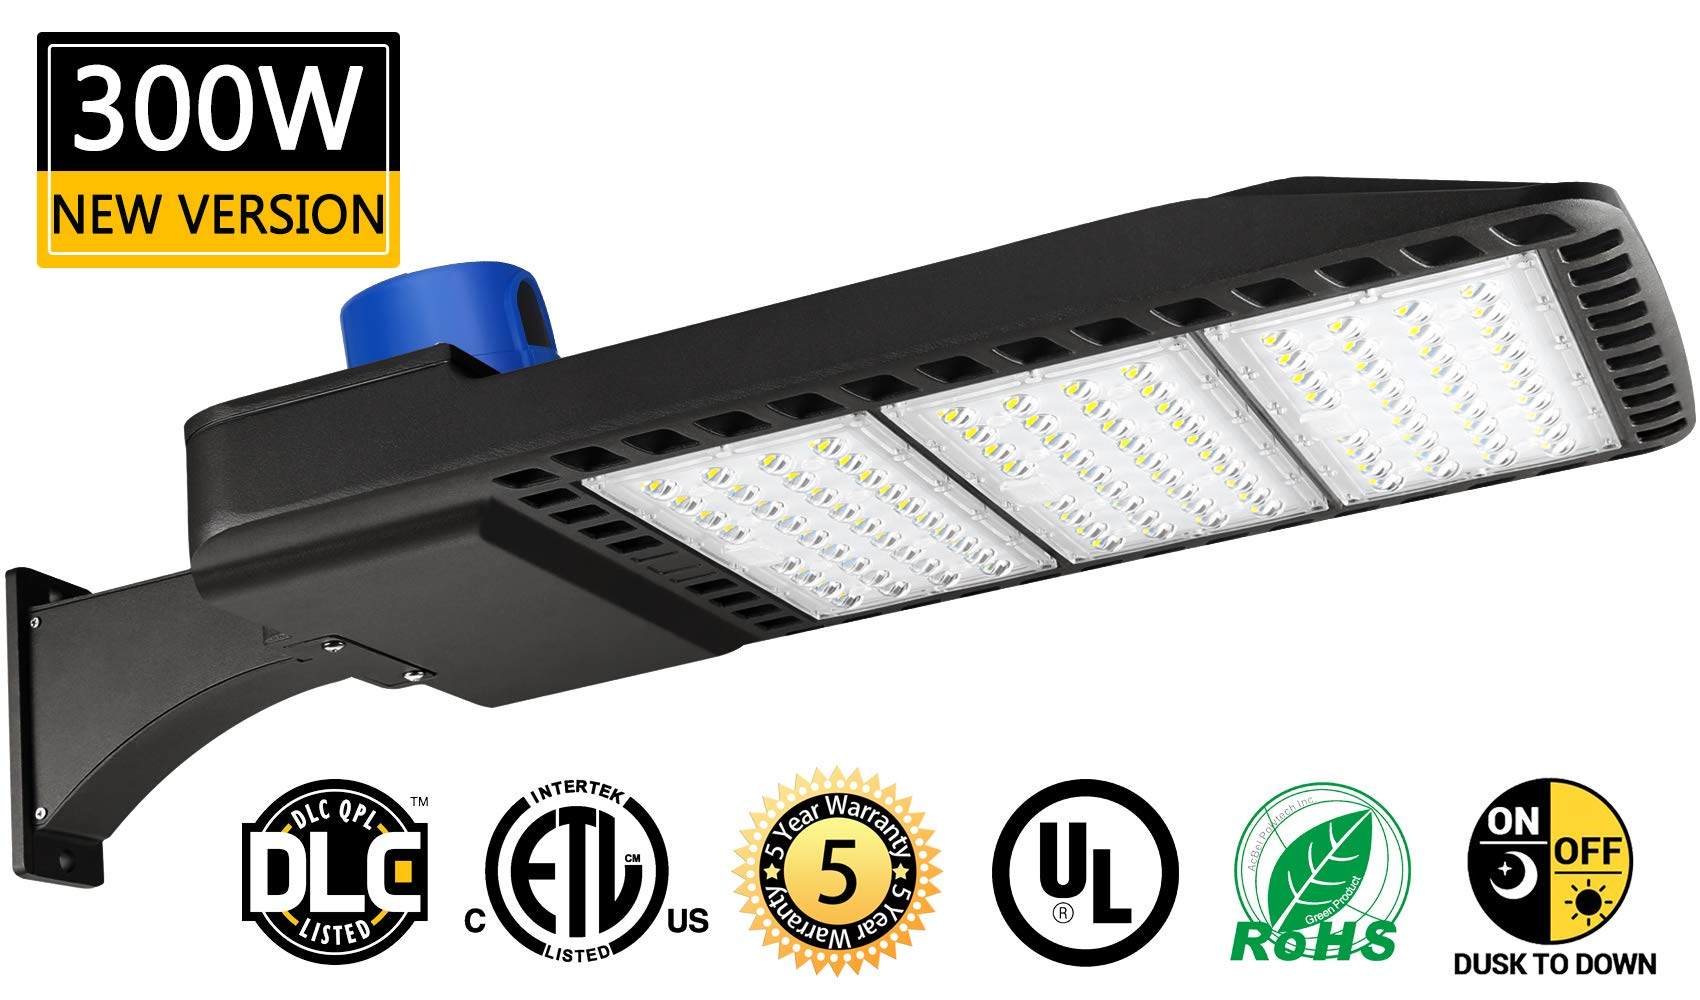 LED Parking Lot Lights 300W Dusk-to-Dawn Photocell Sensor 1000-1200W HID/HPS Replacement Commercial Outdoor Parking Lot Lighting 36000LM 5000K100-277V UL DLC&ETL Listed